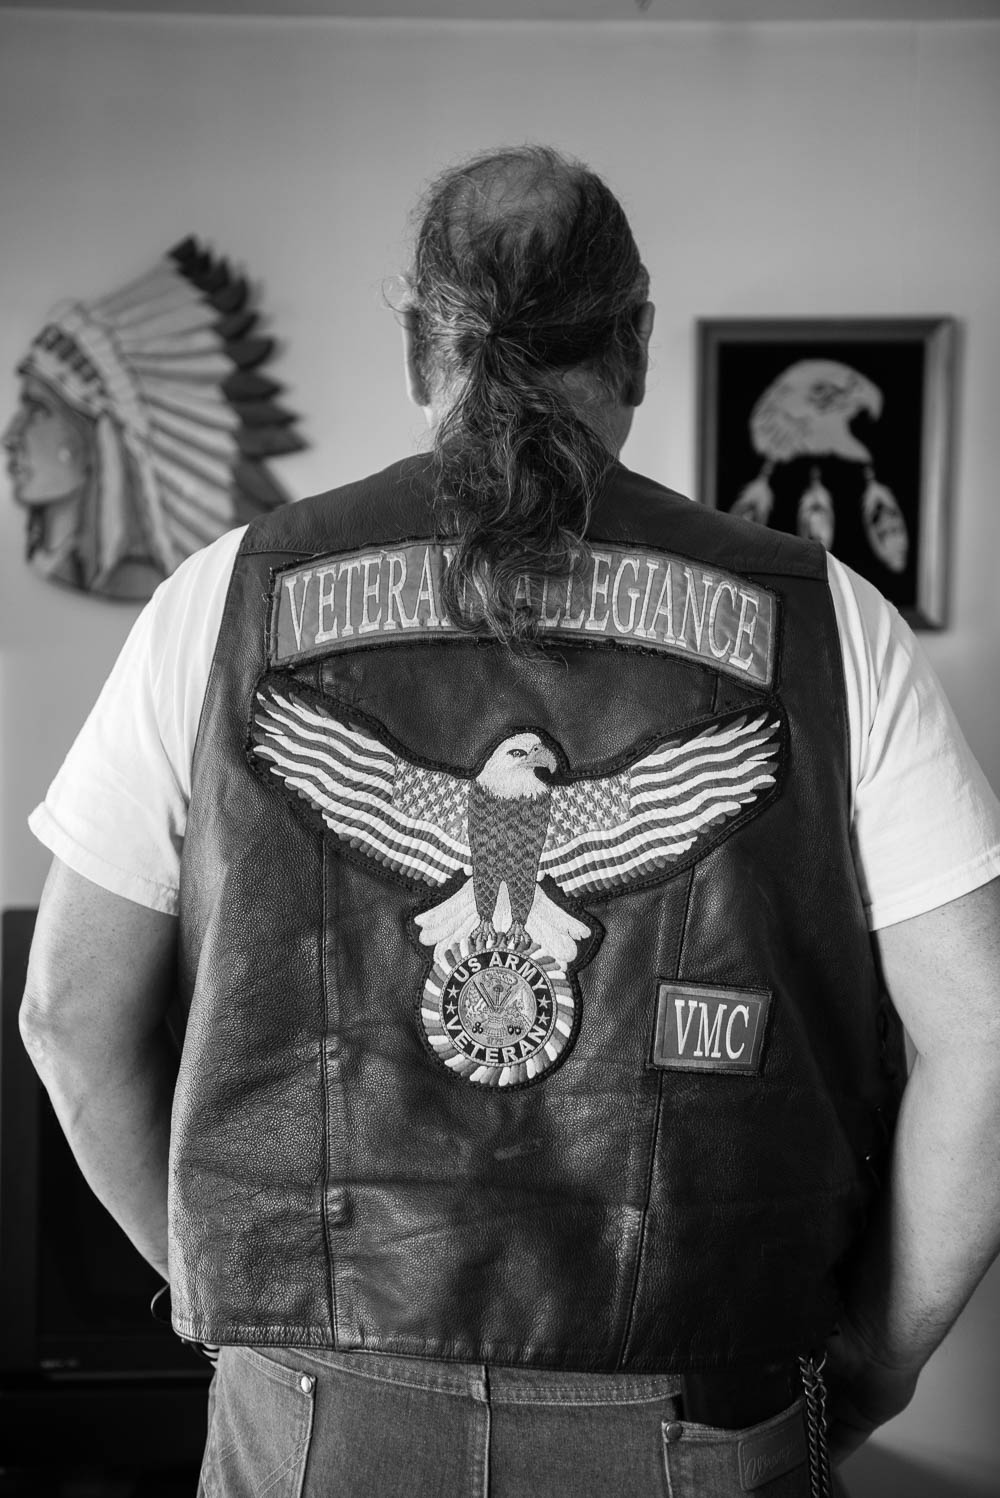 Wearing his motorcycle vest, Michael stands before two wood carvings that his father had made. Michael's father has passed away.